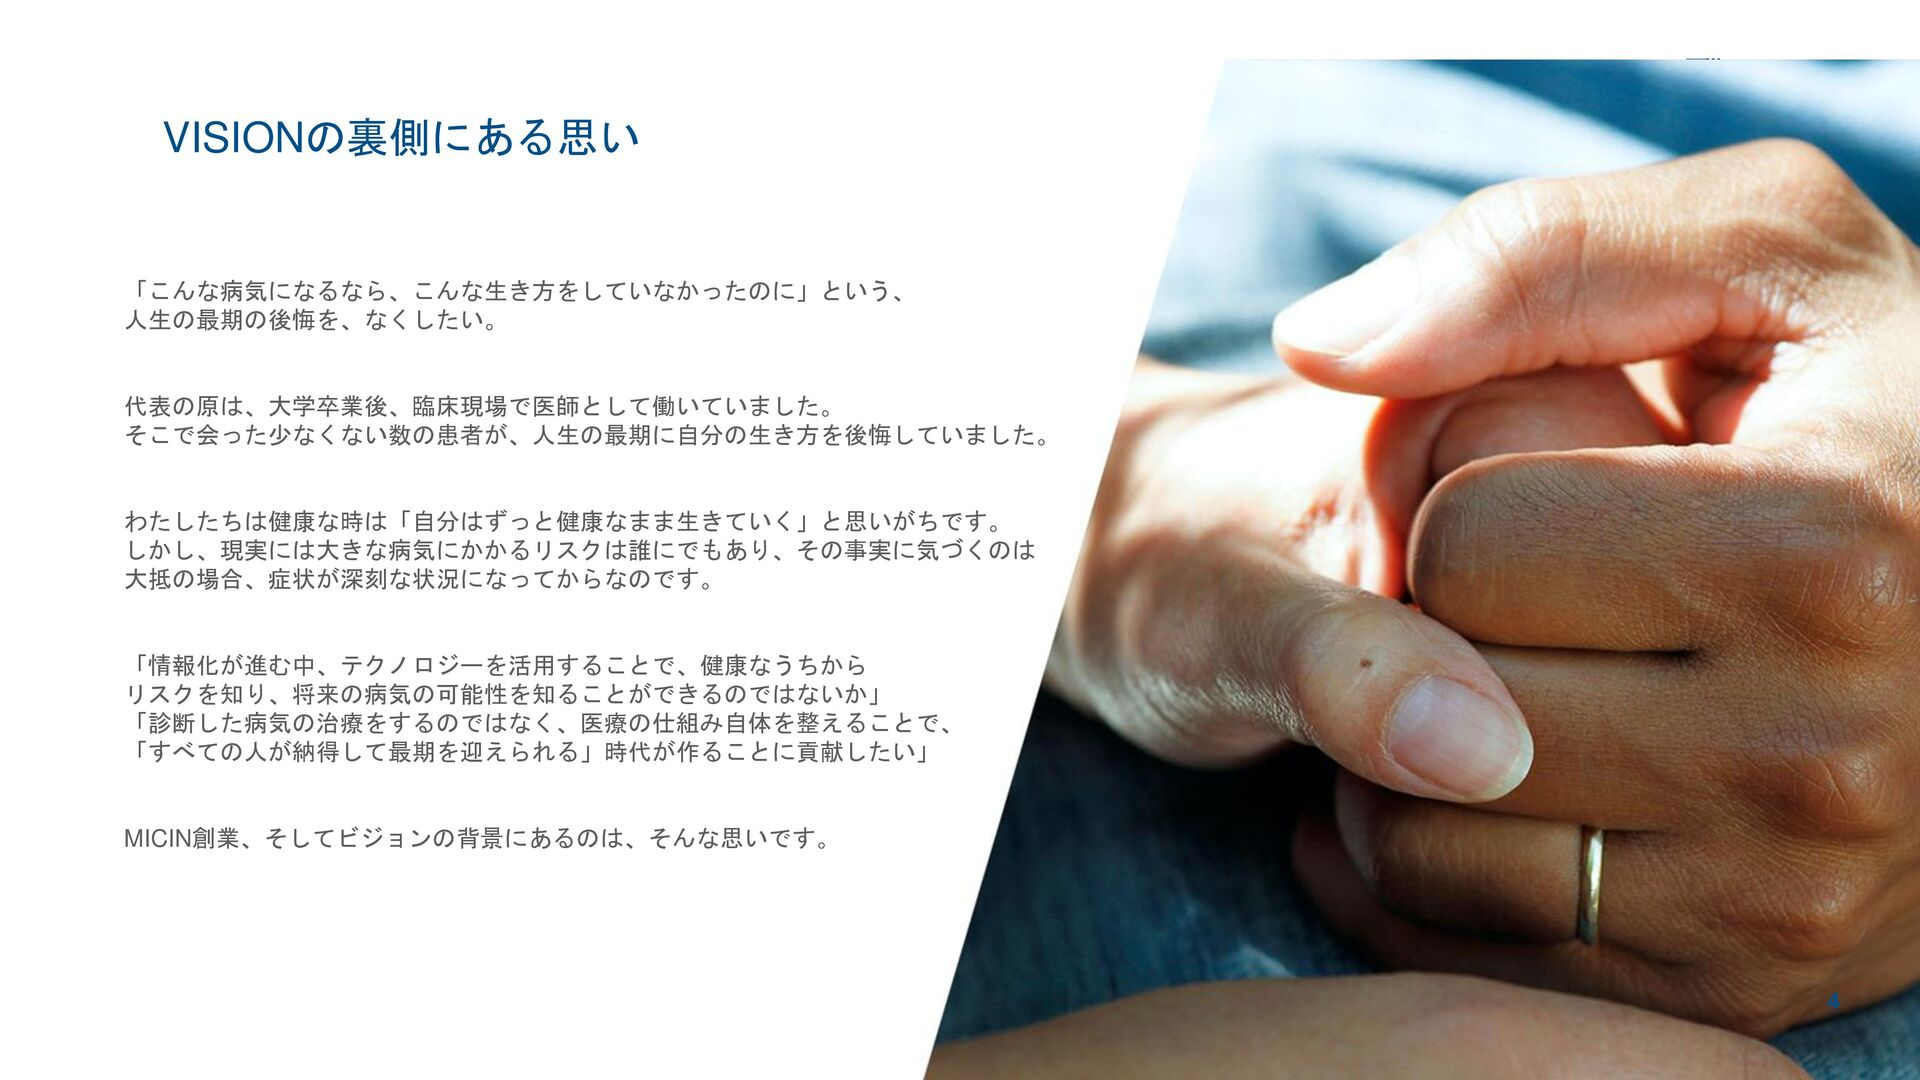 micin.jp   All rights reserved 4 VISION 01 会社概要...